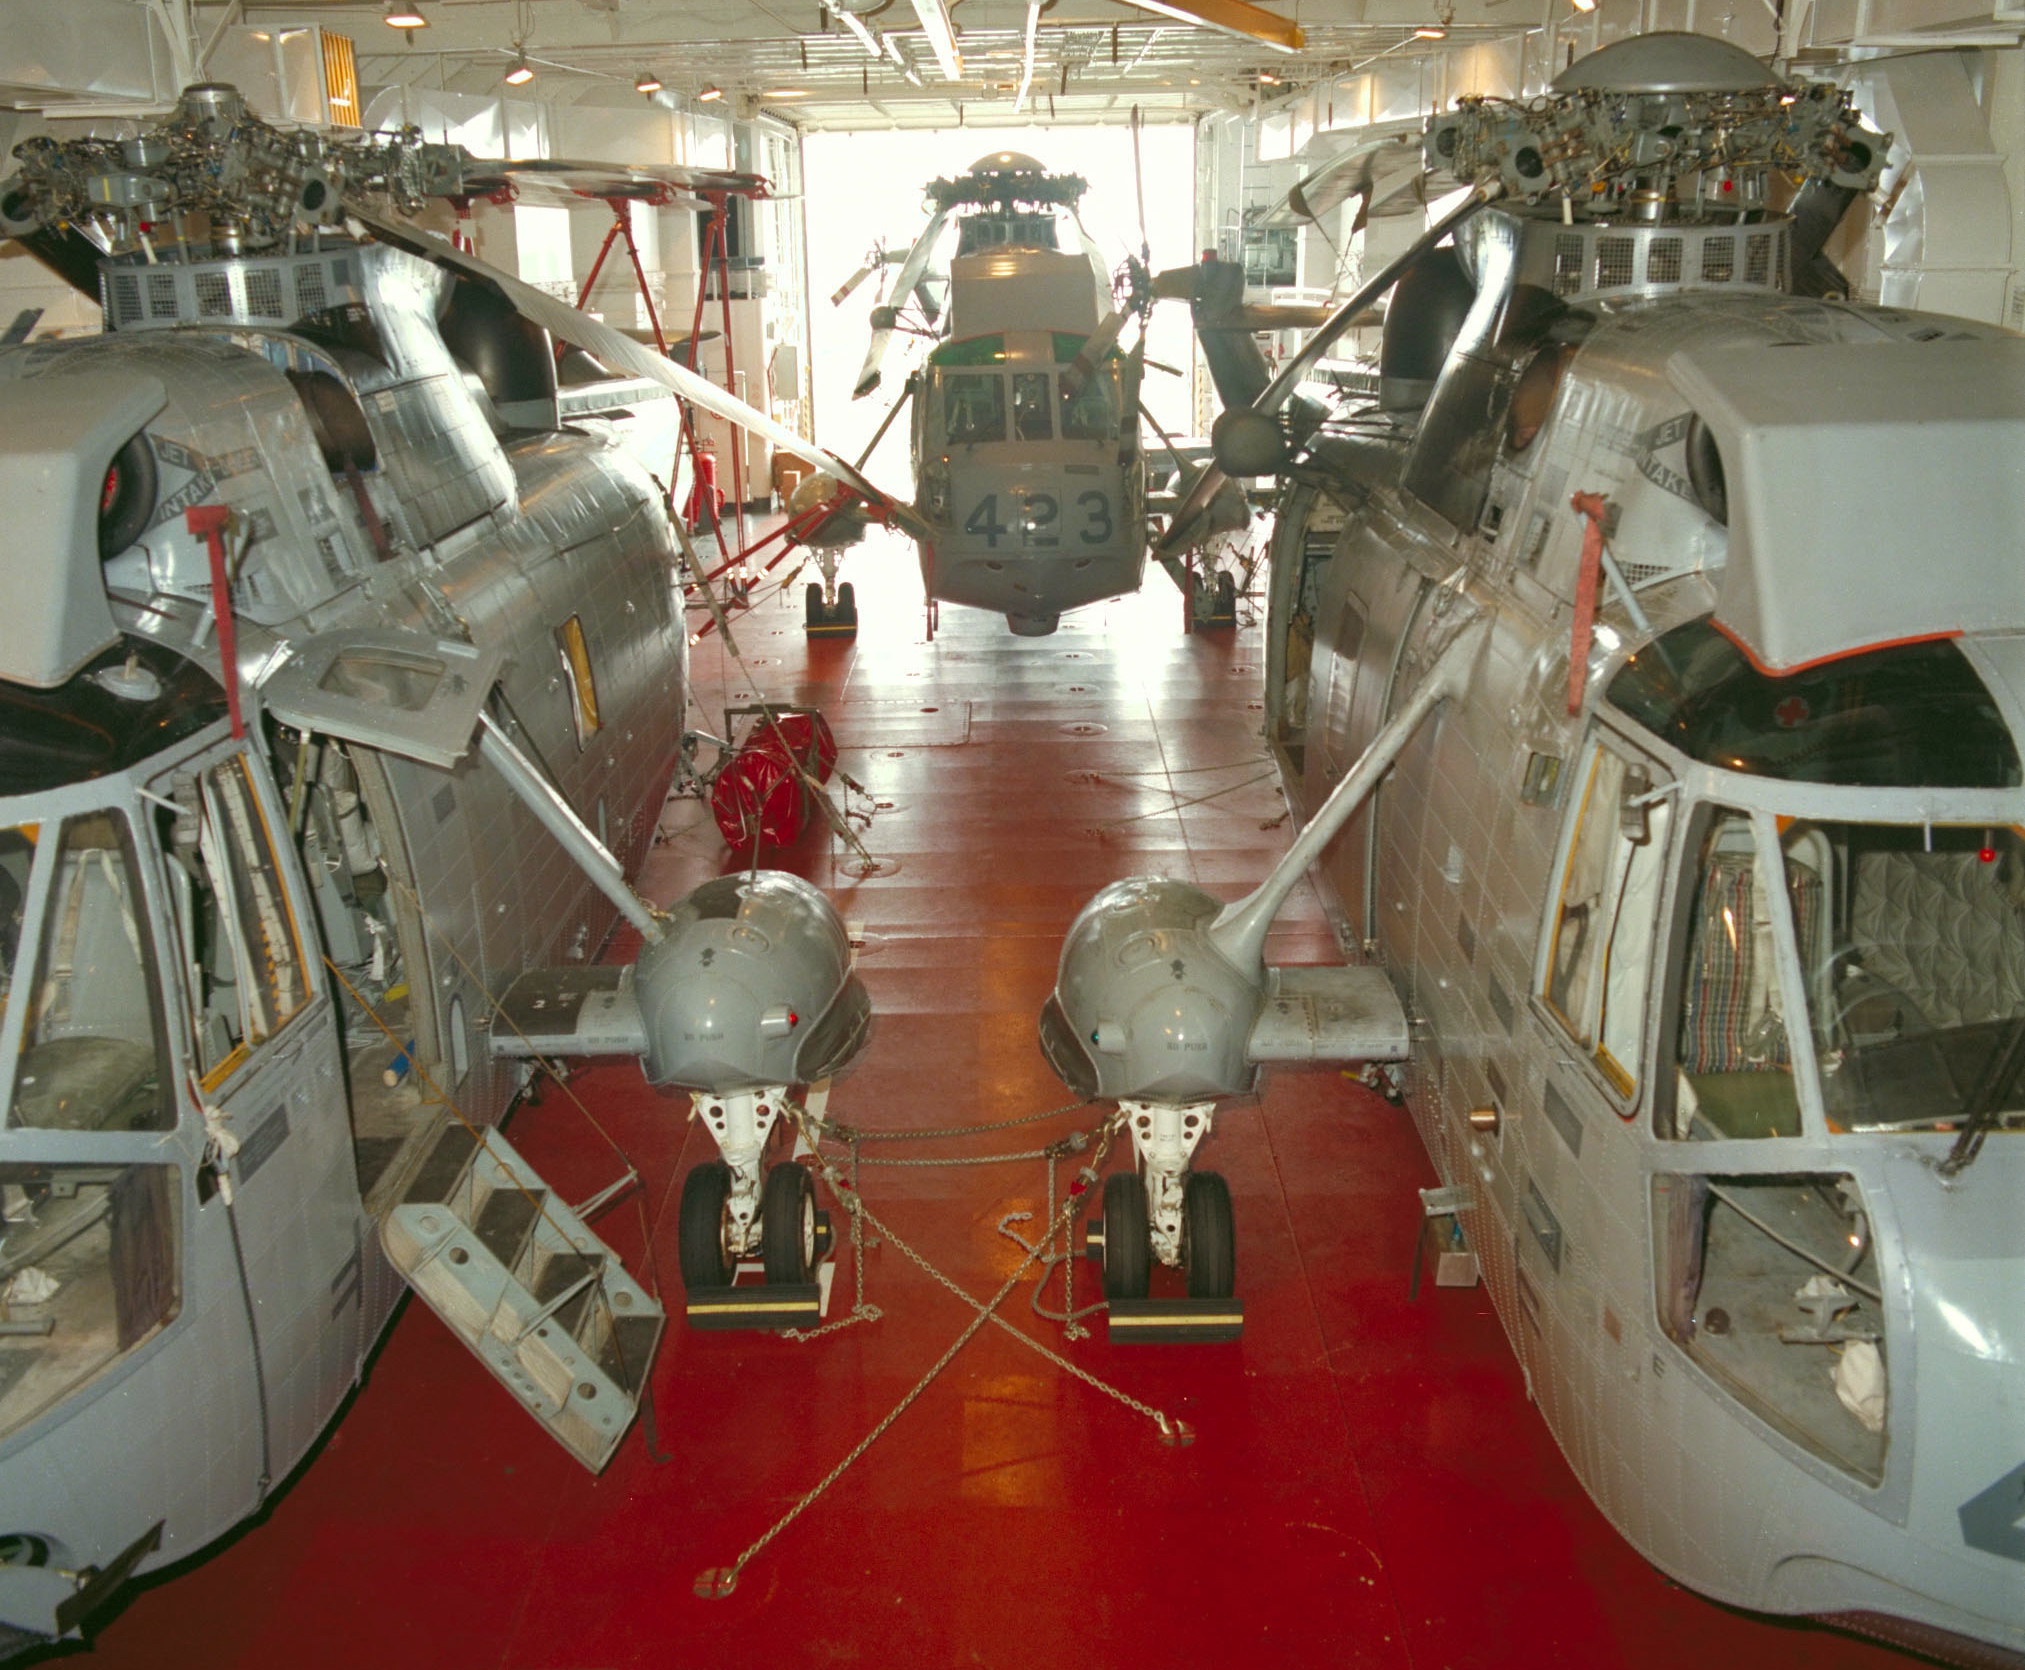 Sea Kings helicopters in HMCS Protecteur's hangar, circa 1990. PHOTO: DND Archives, IHC90-002-8